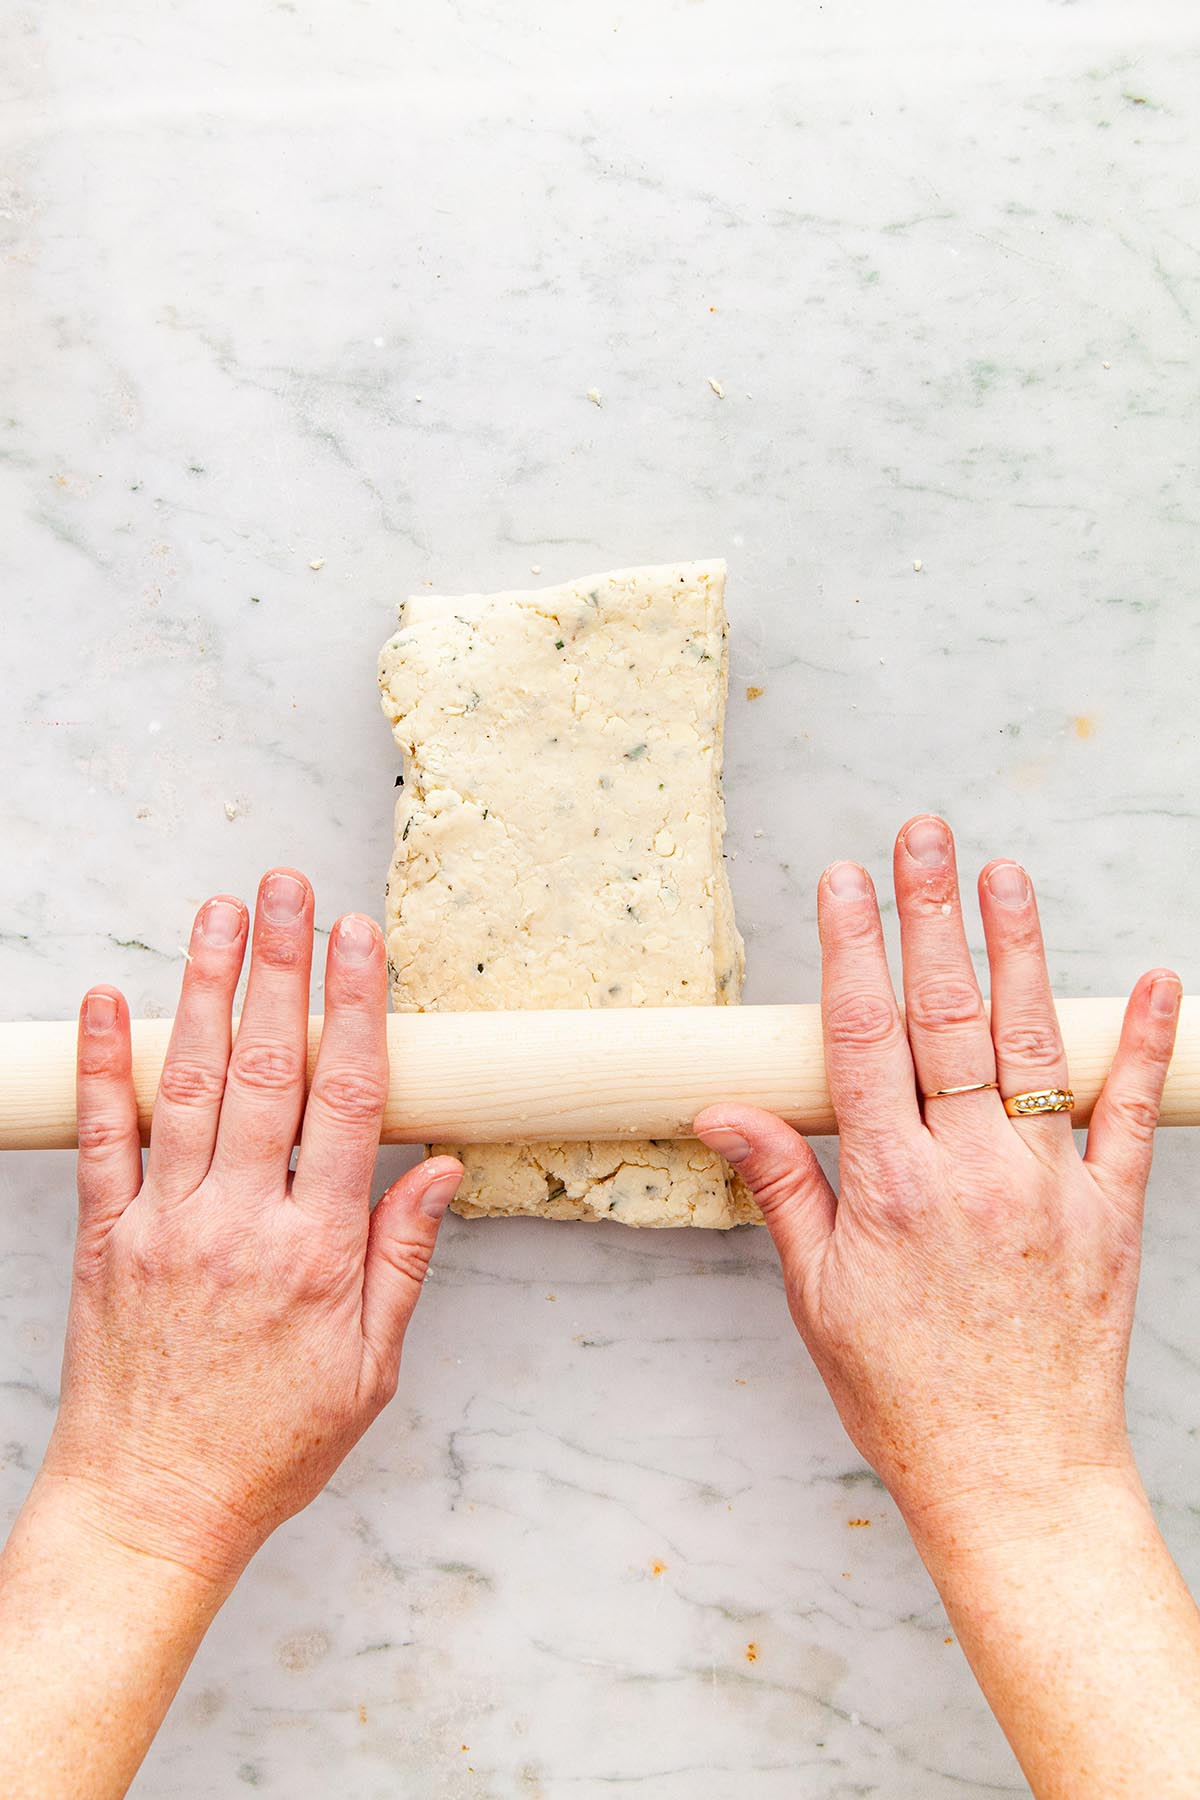 Hands rolling dough with a wooden pin.